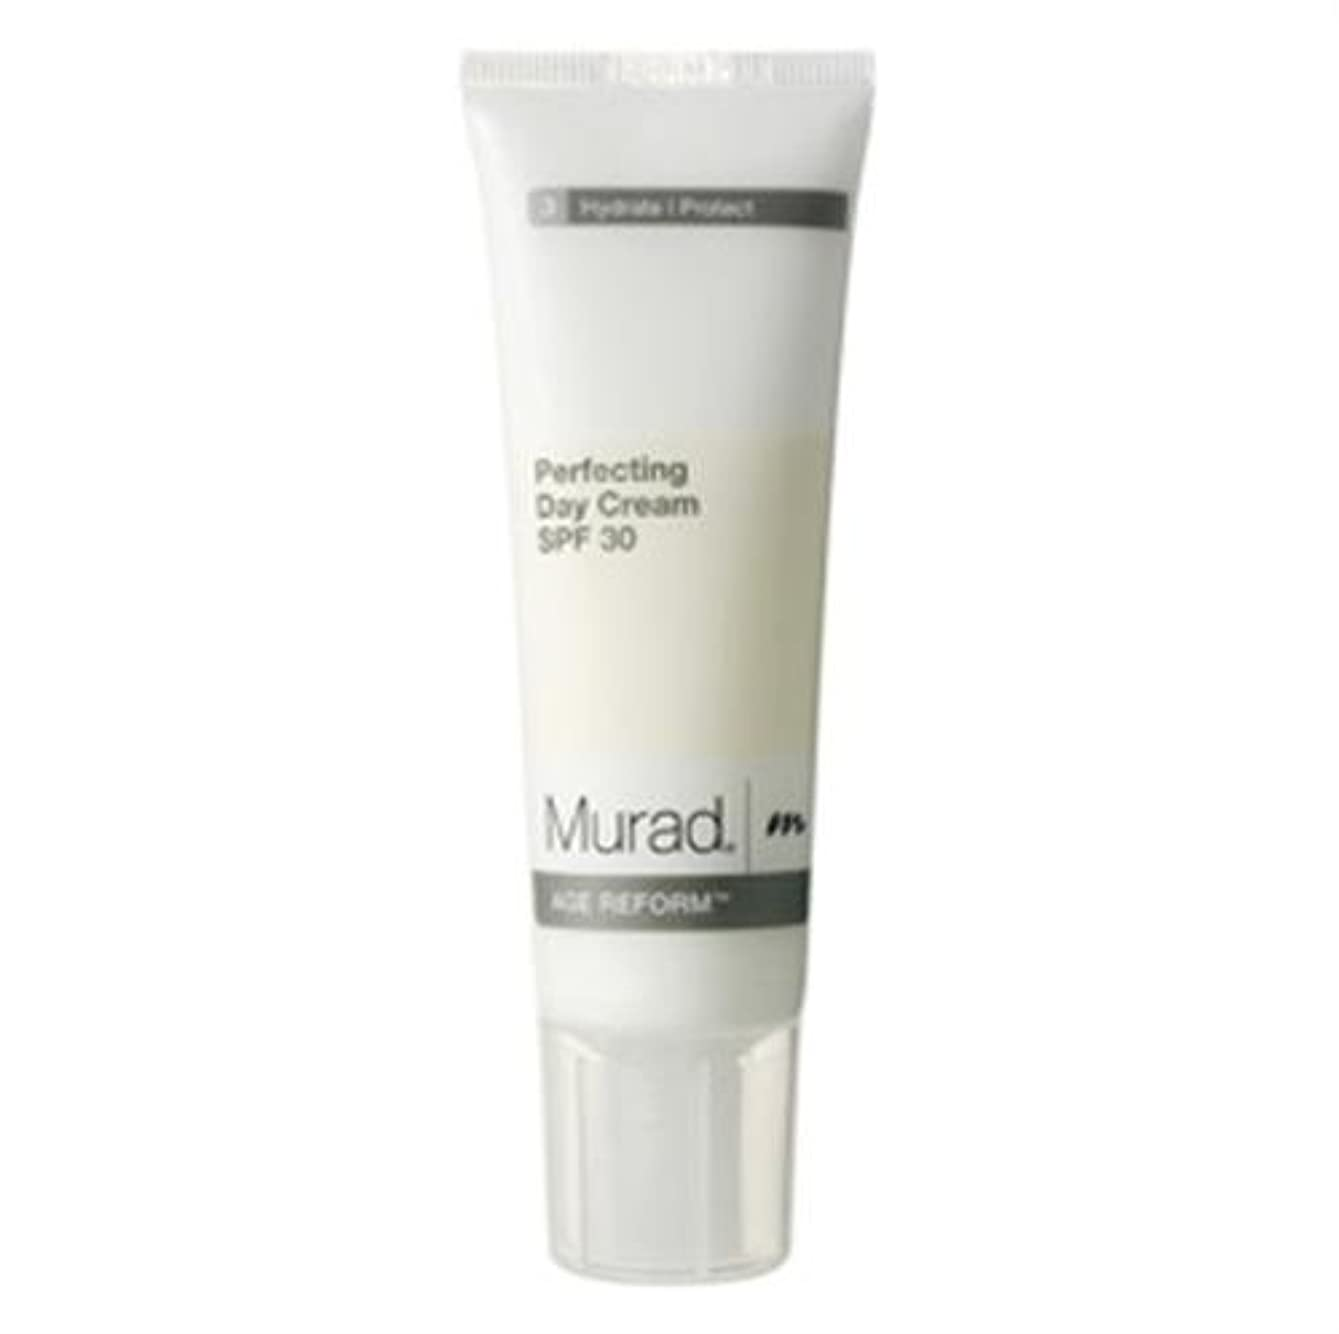 貼り直す故意に挑むミュラド Perfecting Day Cream SPF30 - Dry/Sensitive Skin (Exp. Date 03/2020) 50ml/1.7oz並行輸入品